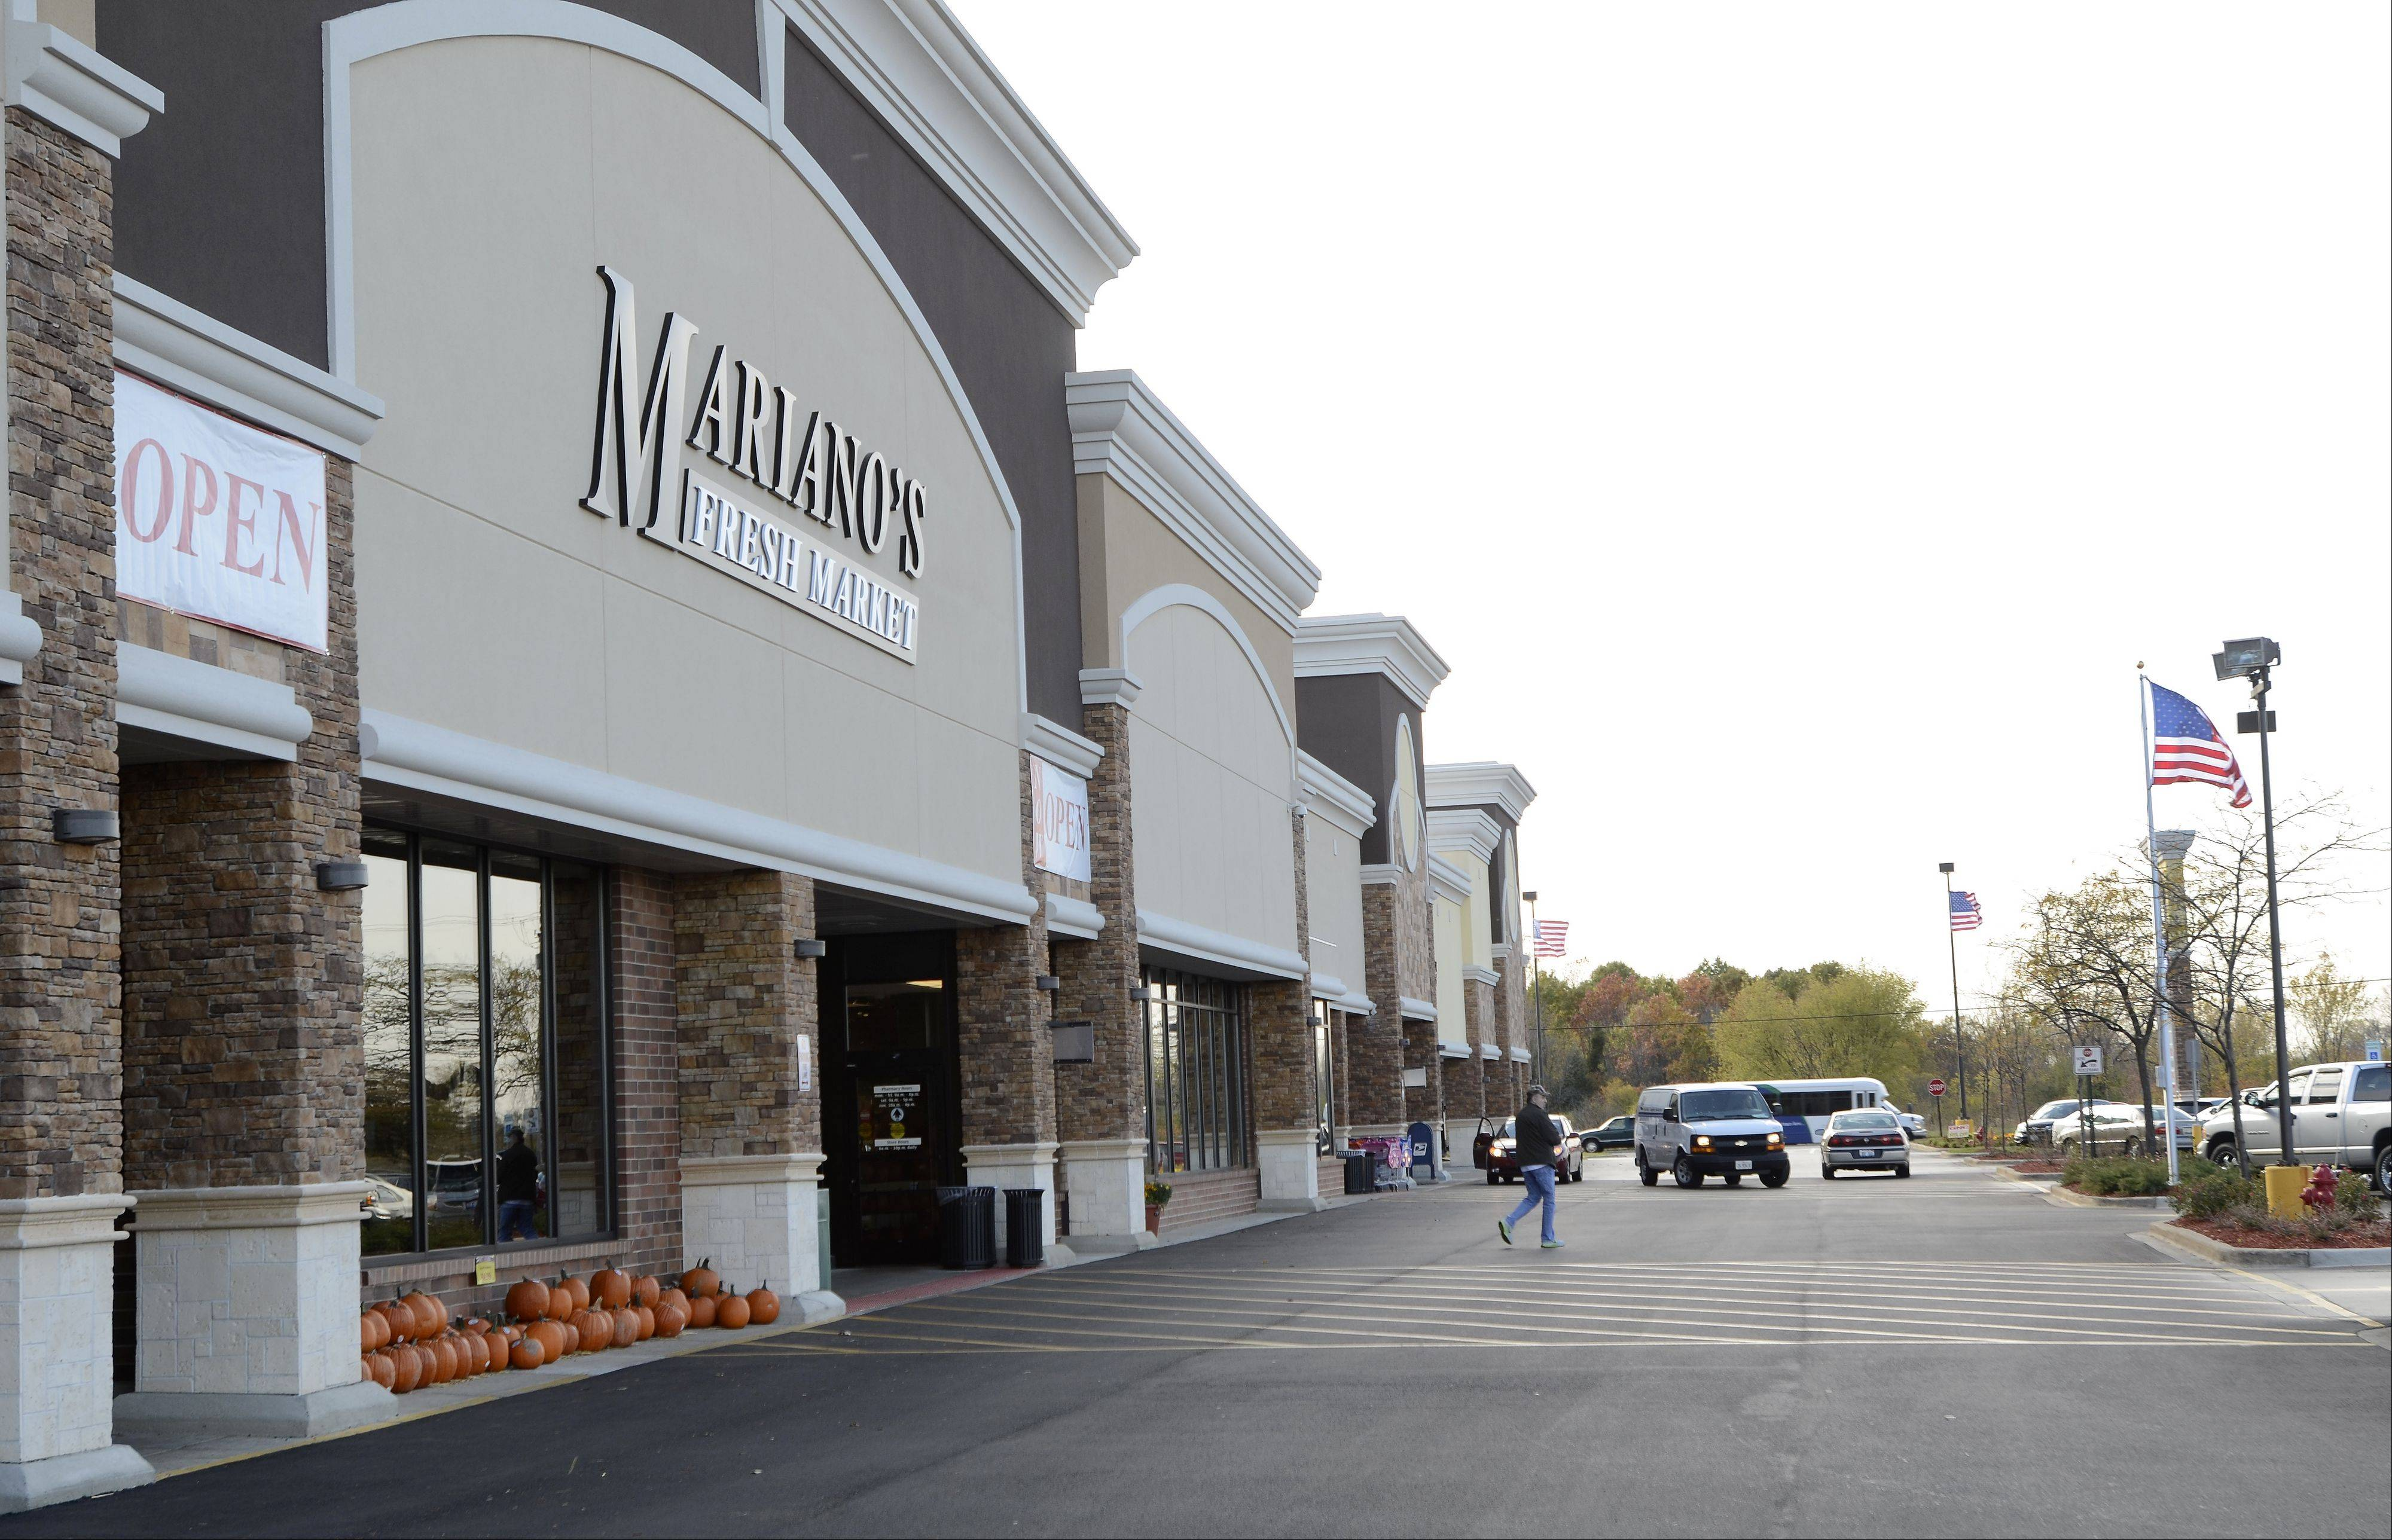 The Hoffman Estates village board agreed to let a Goodwill retail store and donation center move into the Hoffman Village Shopping Center, located near Barrington and Golf roads. Village officials say the center has been revitalized since a Mariano's Fresh Market moved into the center in August 2012.